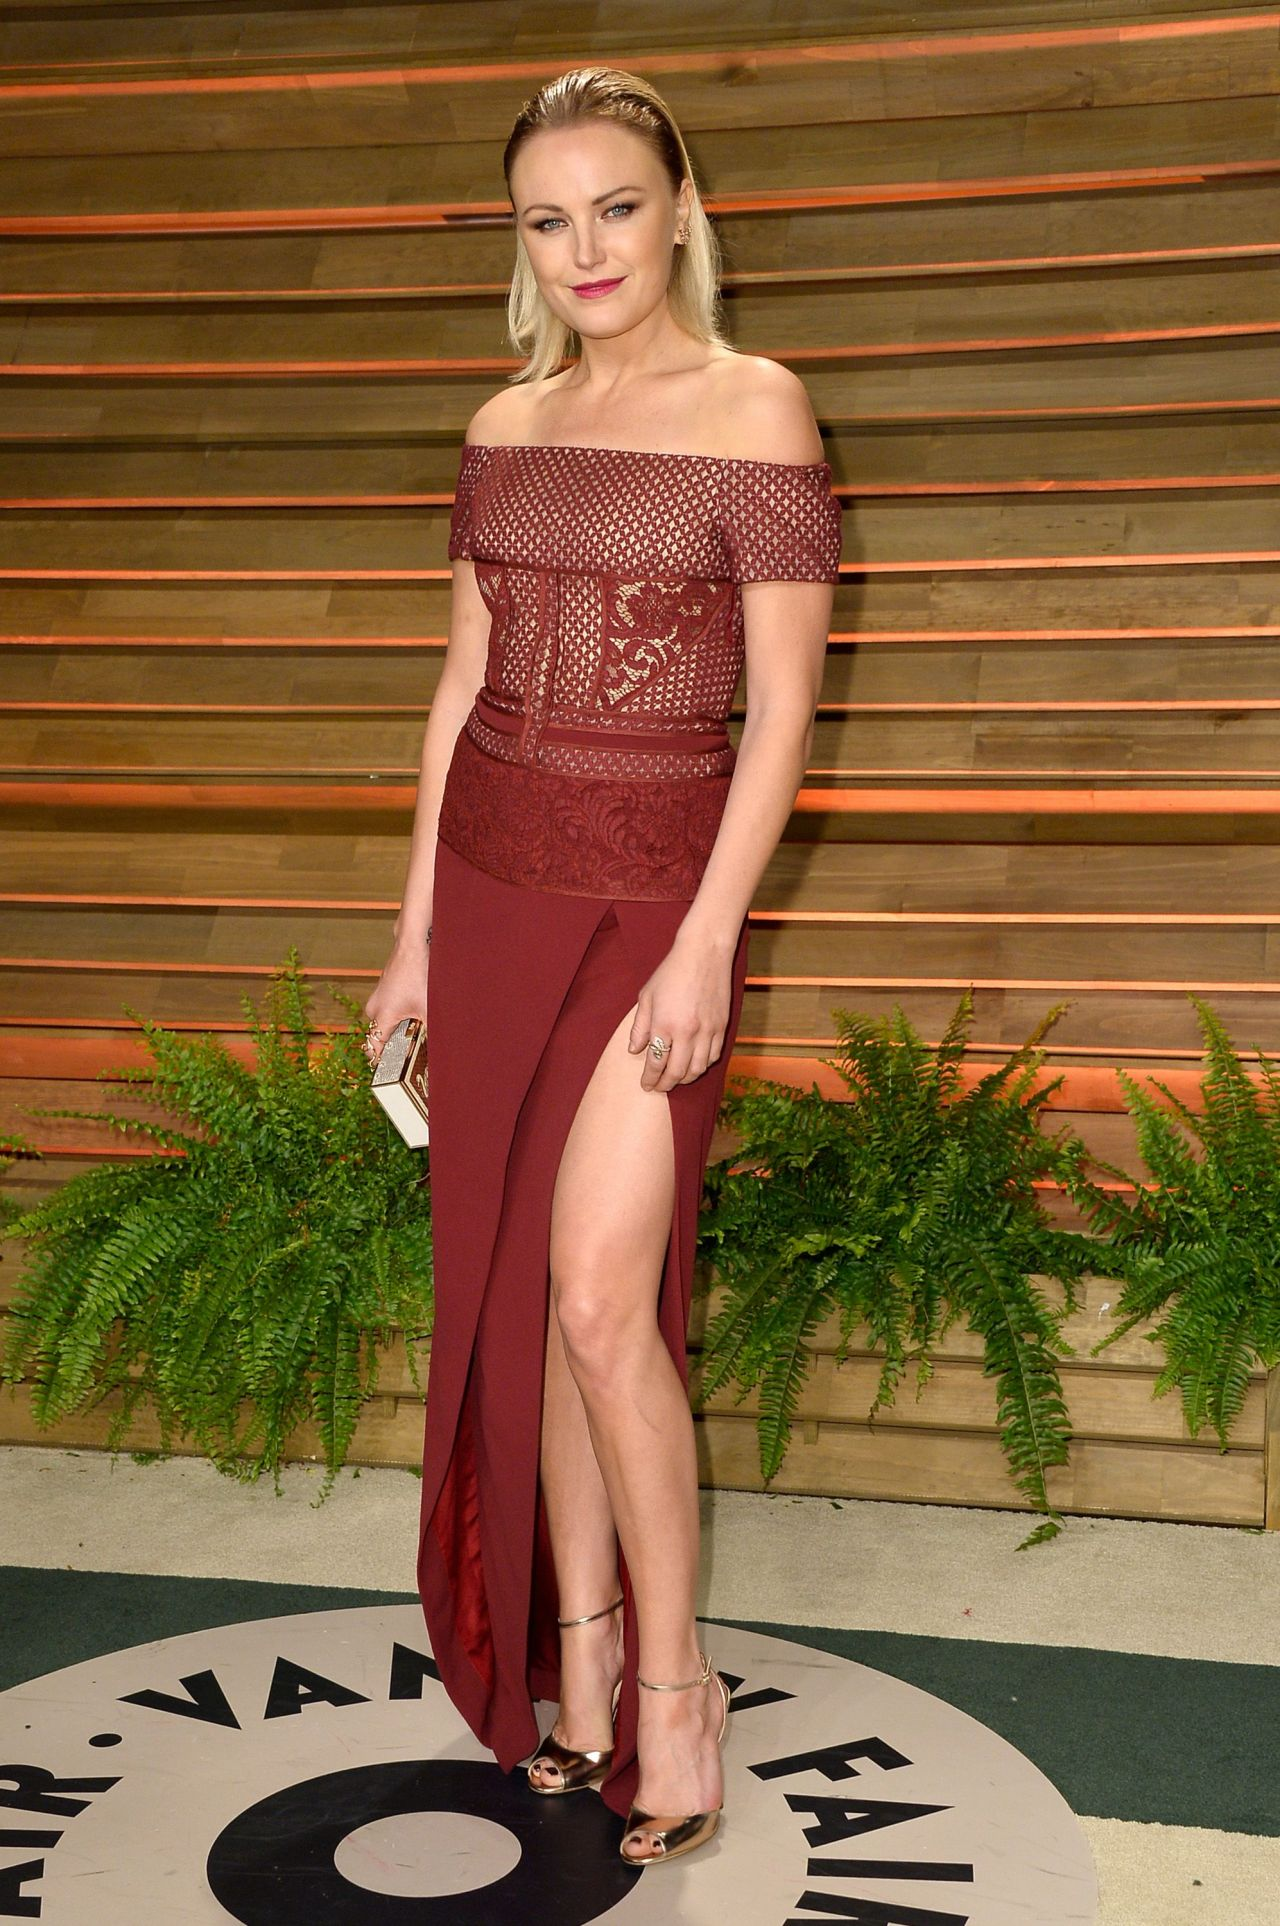 Malin Akerman in J. Mendel Gown - 2014 Vanity Fair Oscar Party in Hollywood